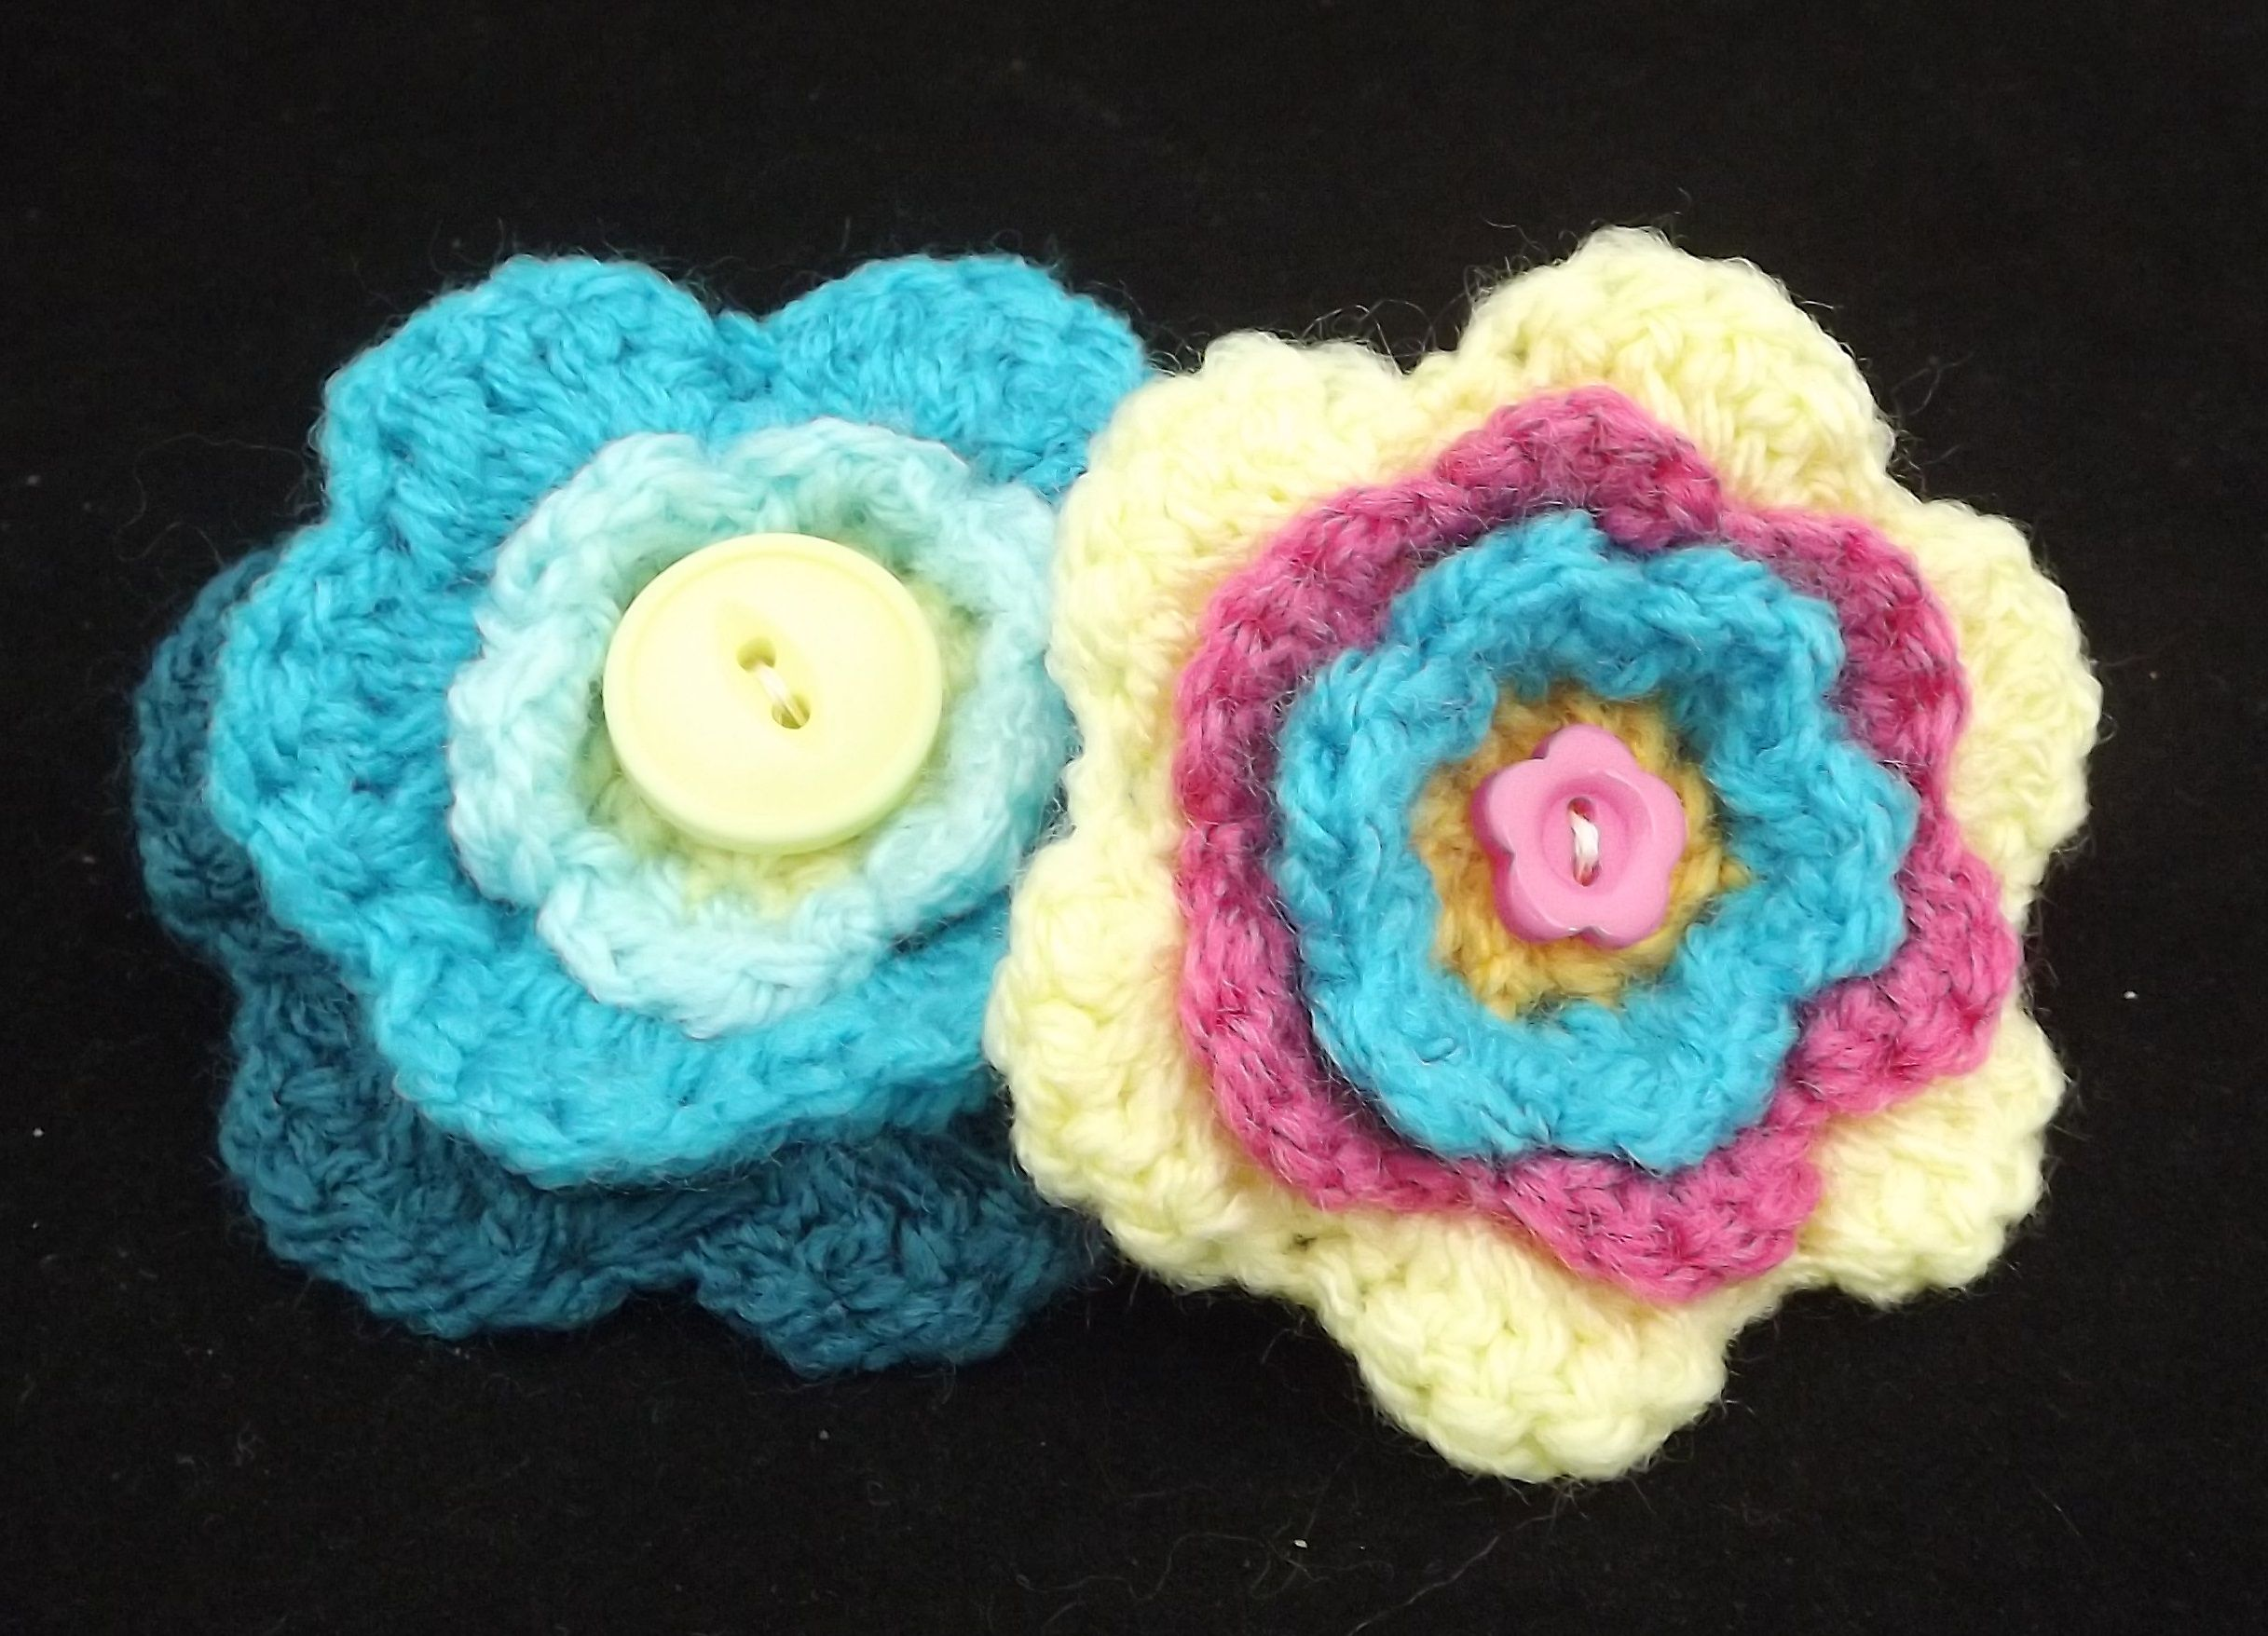 s floare facebook flower crosetata com crocheted pin brosa brooch